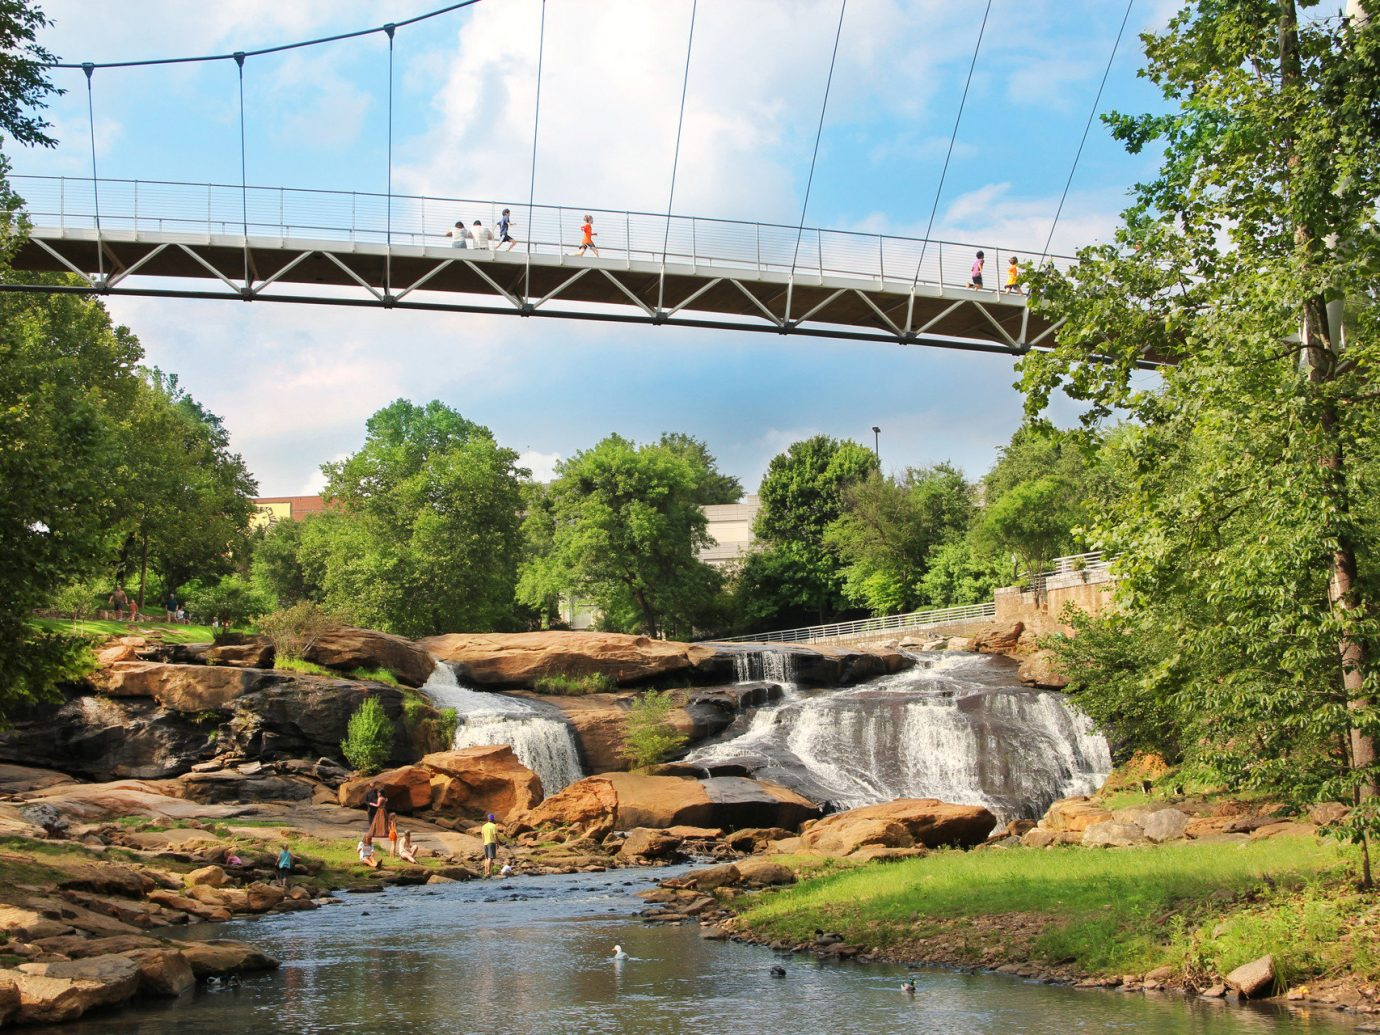 bridge calm Garden Greenery leaves Nature Outdoors park people remote River Rocks rushing water serene stream trees Trip Ideas Waterfall Waterfalls tree outdoor sky water water feature nonbuilding structure arch bridge reservoir traveling Forest surrounded